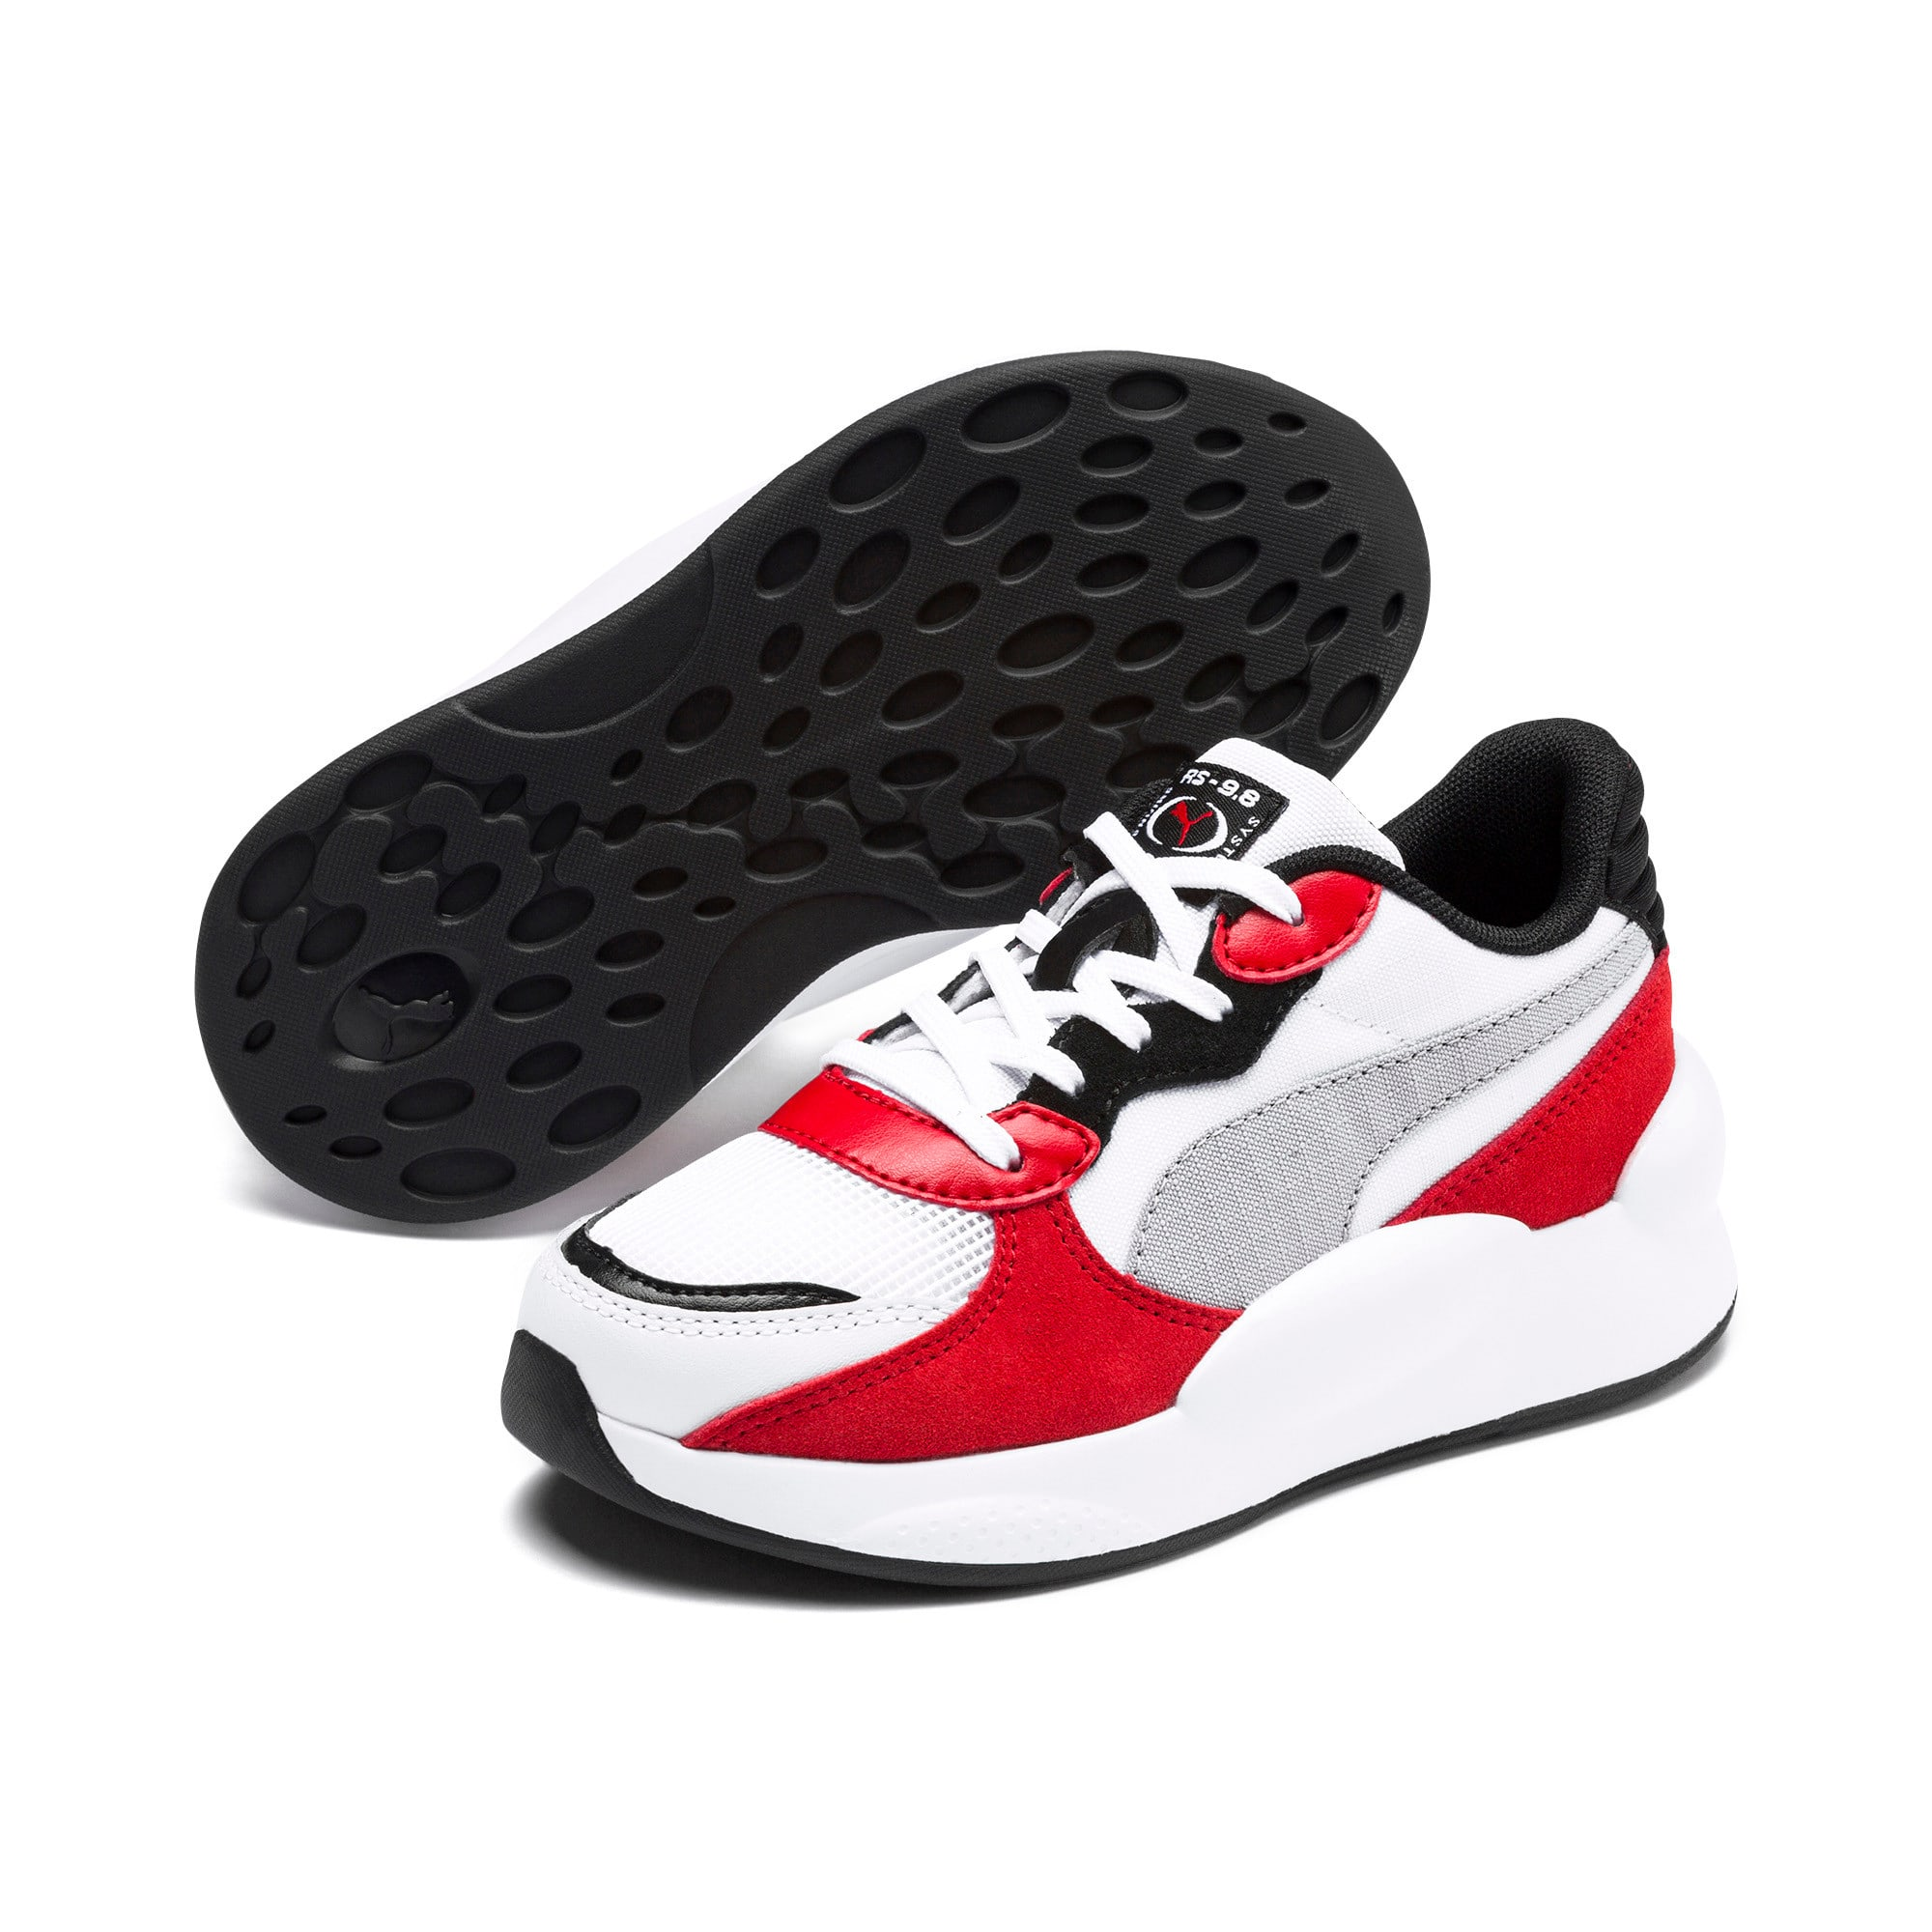 Thumbnail 2 of RS 9.8 Space Little Kids' Shoes, Puma White-High Risk Red, medium